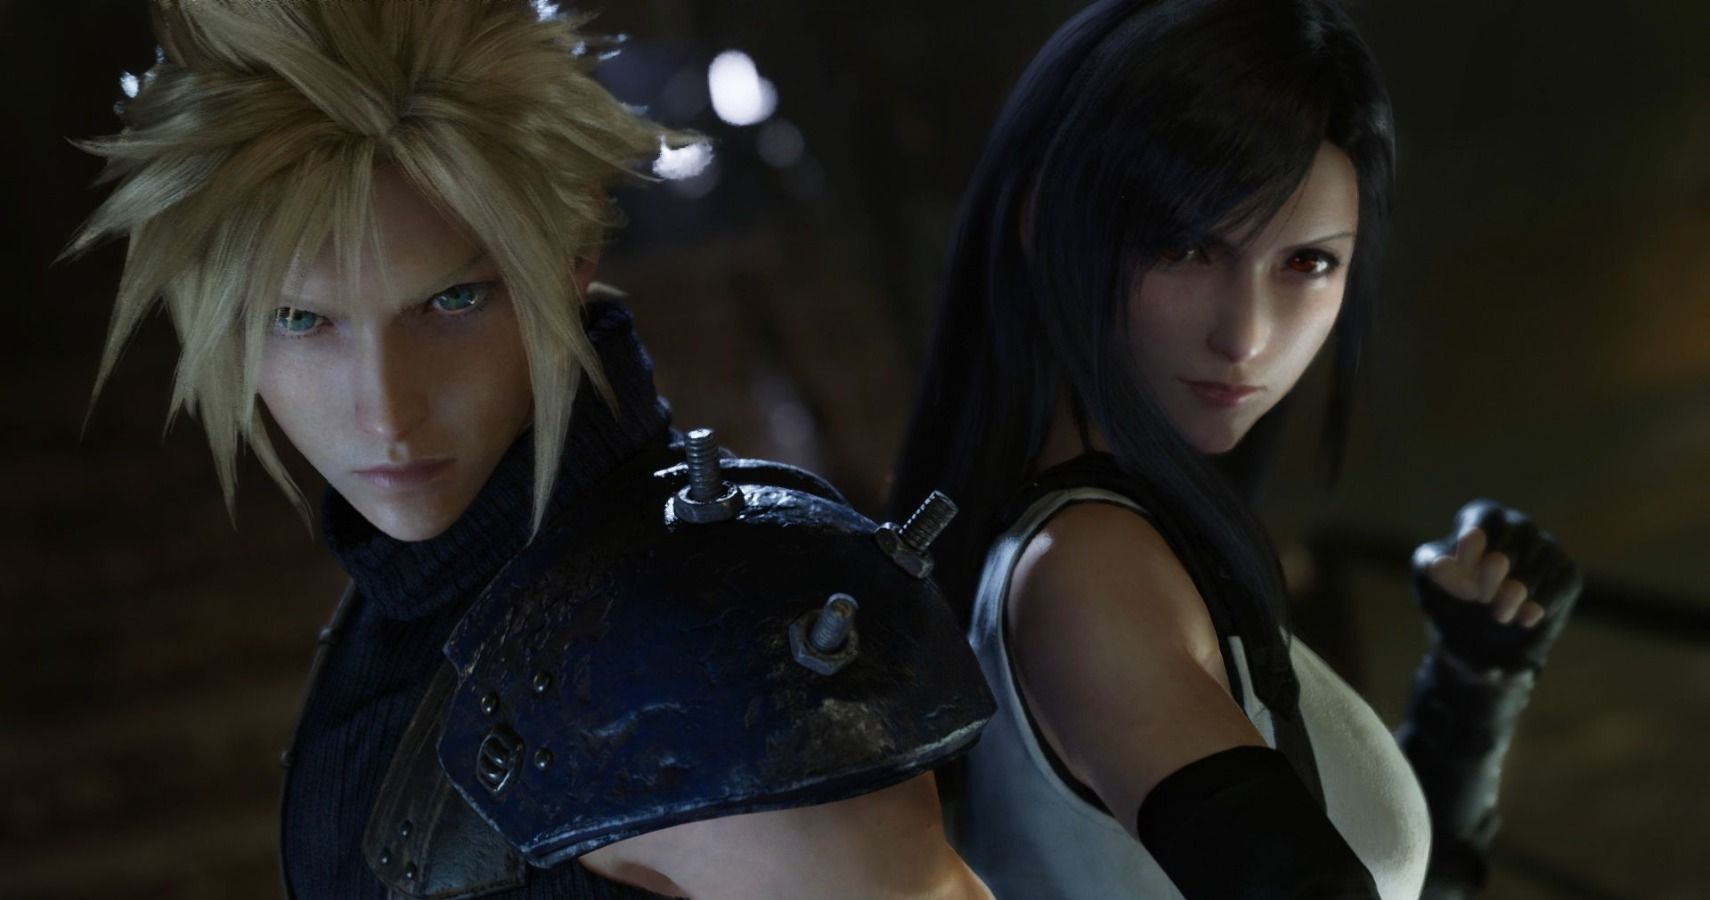 I Wish Final Fantasy 7 Remake Gave Newcomers More Of A Chance